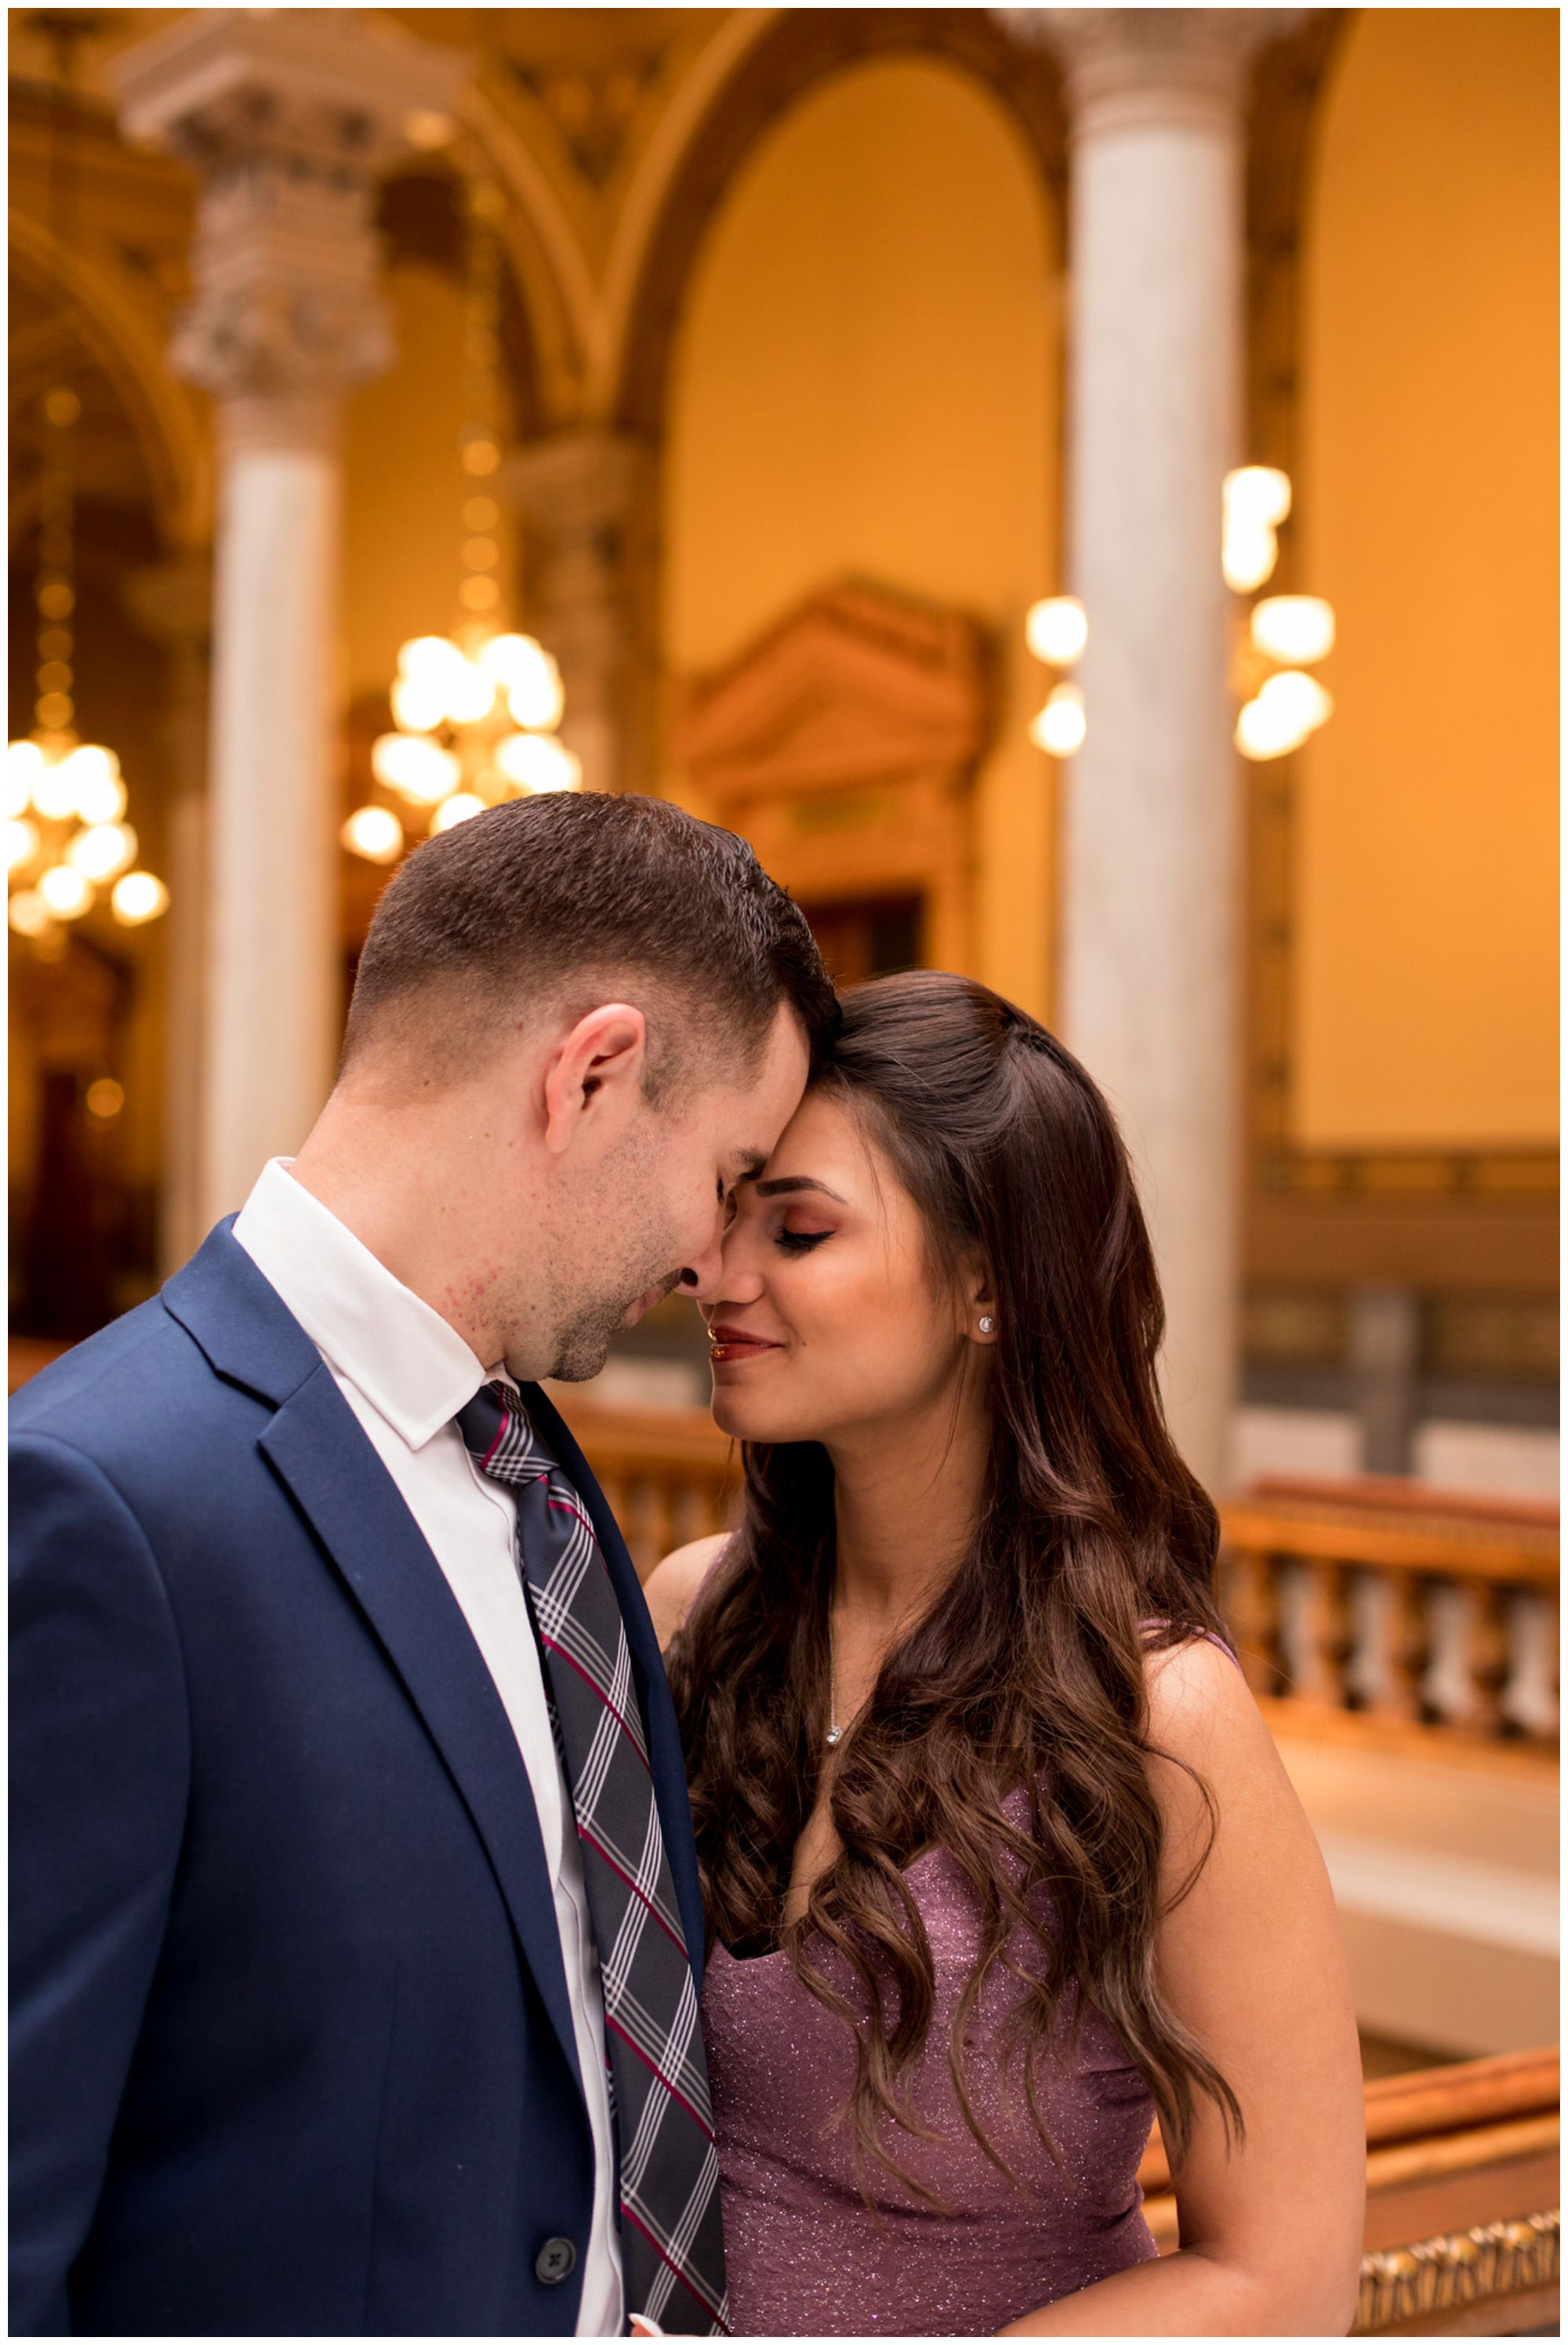 intimate bride and groom portraits after elopement ceremony at Indiana Statehouse in downtown Indy